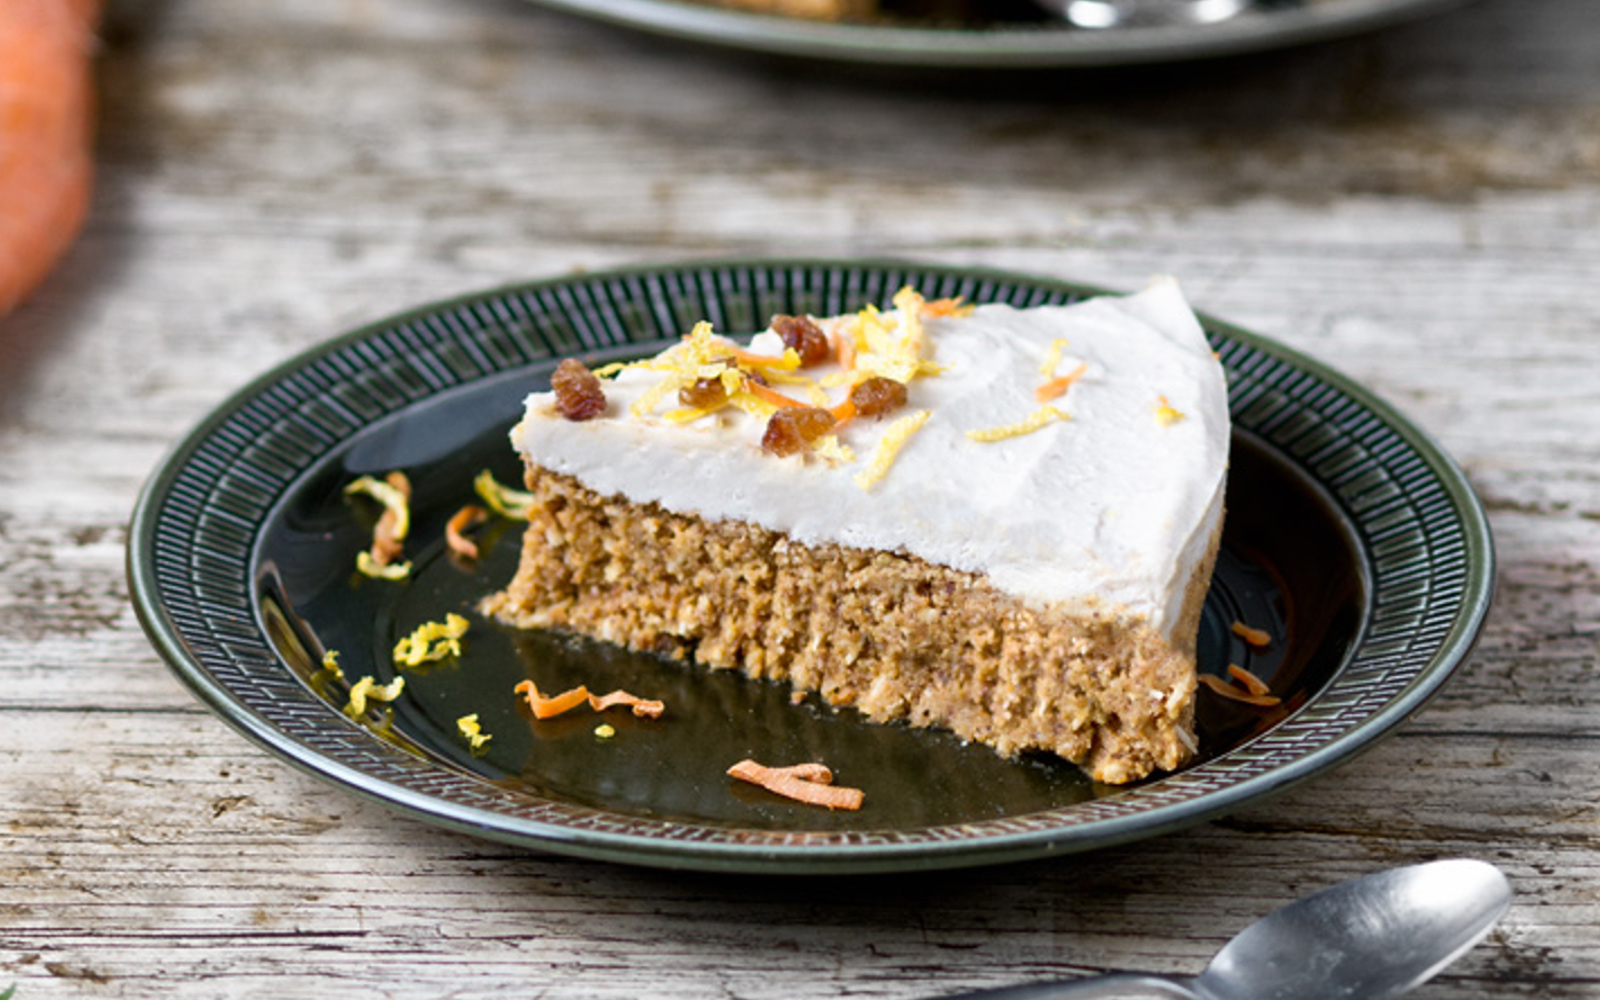 Almond and Date Carrot Cake